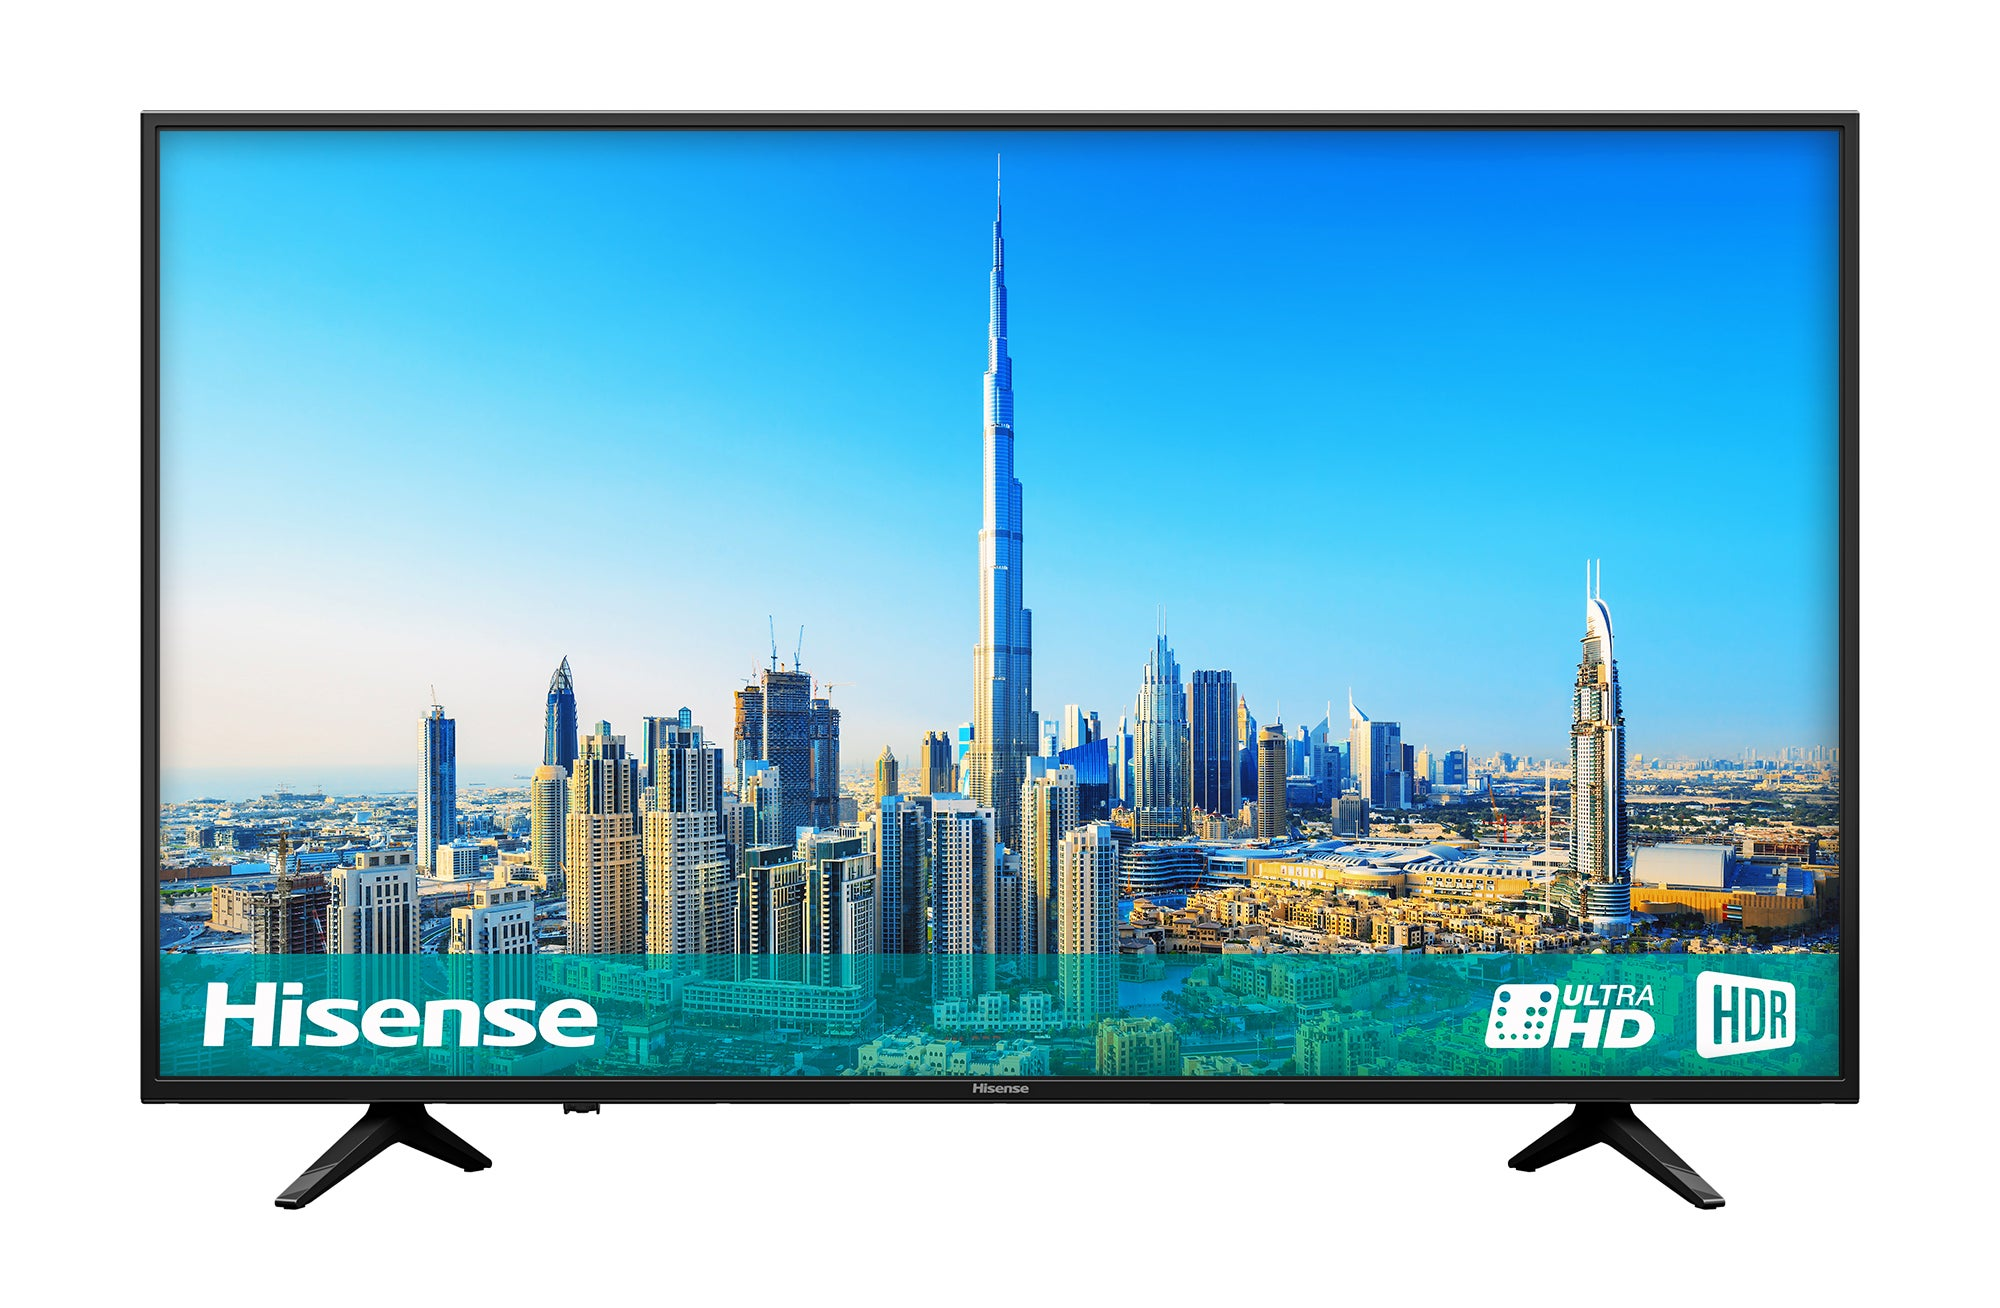 Hisense A6200 Review Trusted Reviews